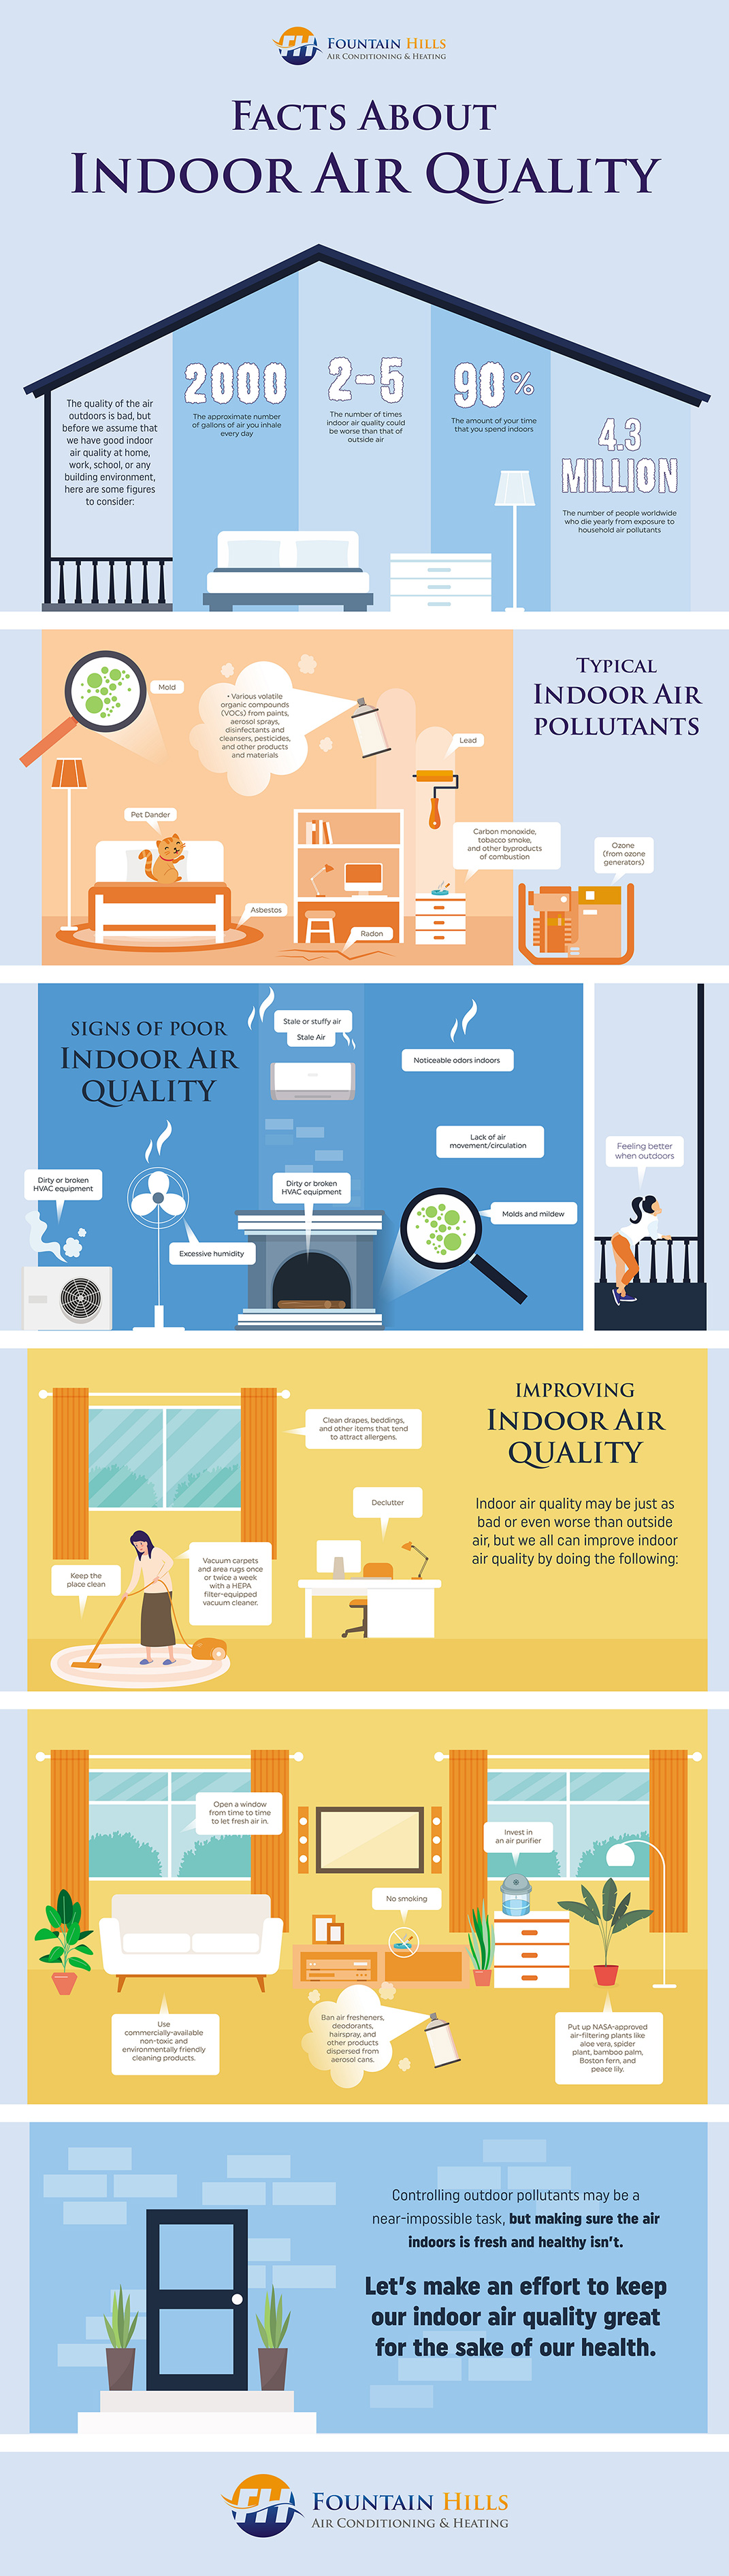 facts about Indoor Air Quality